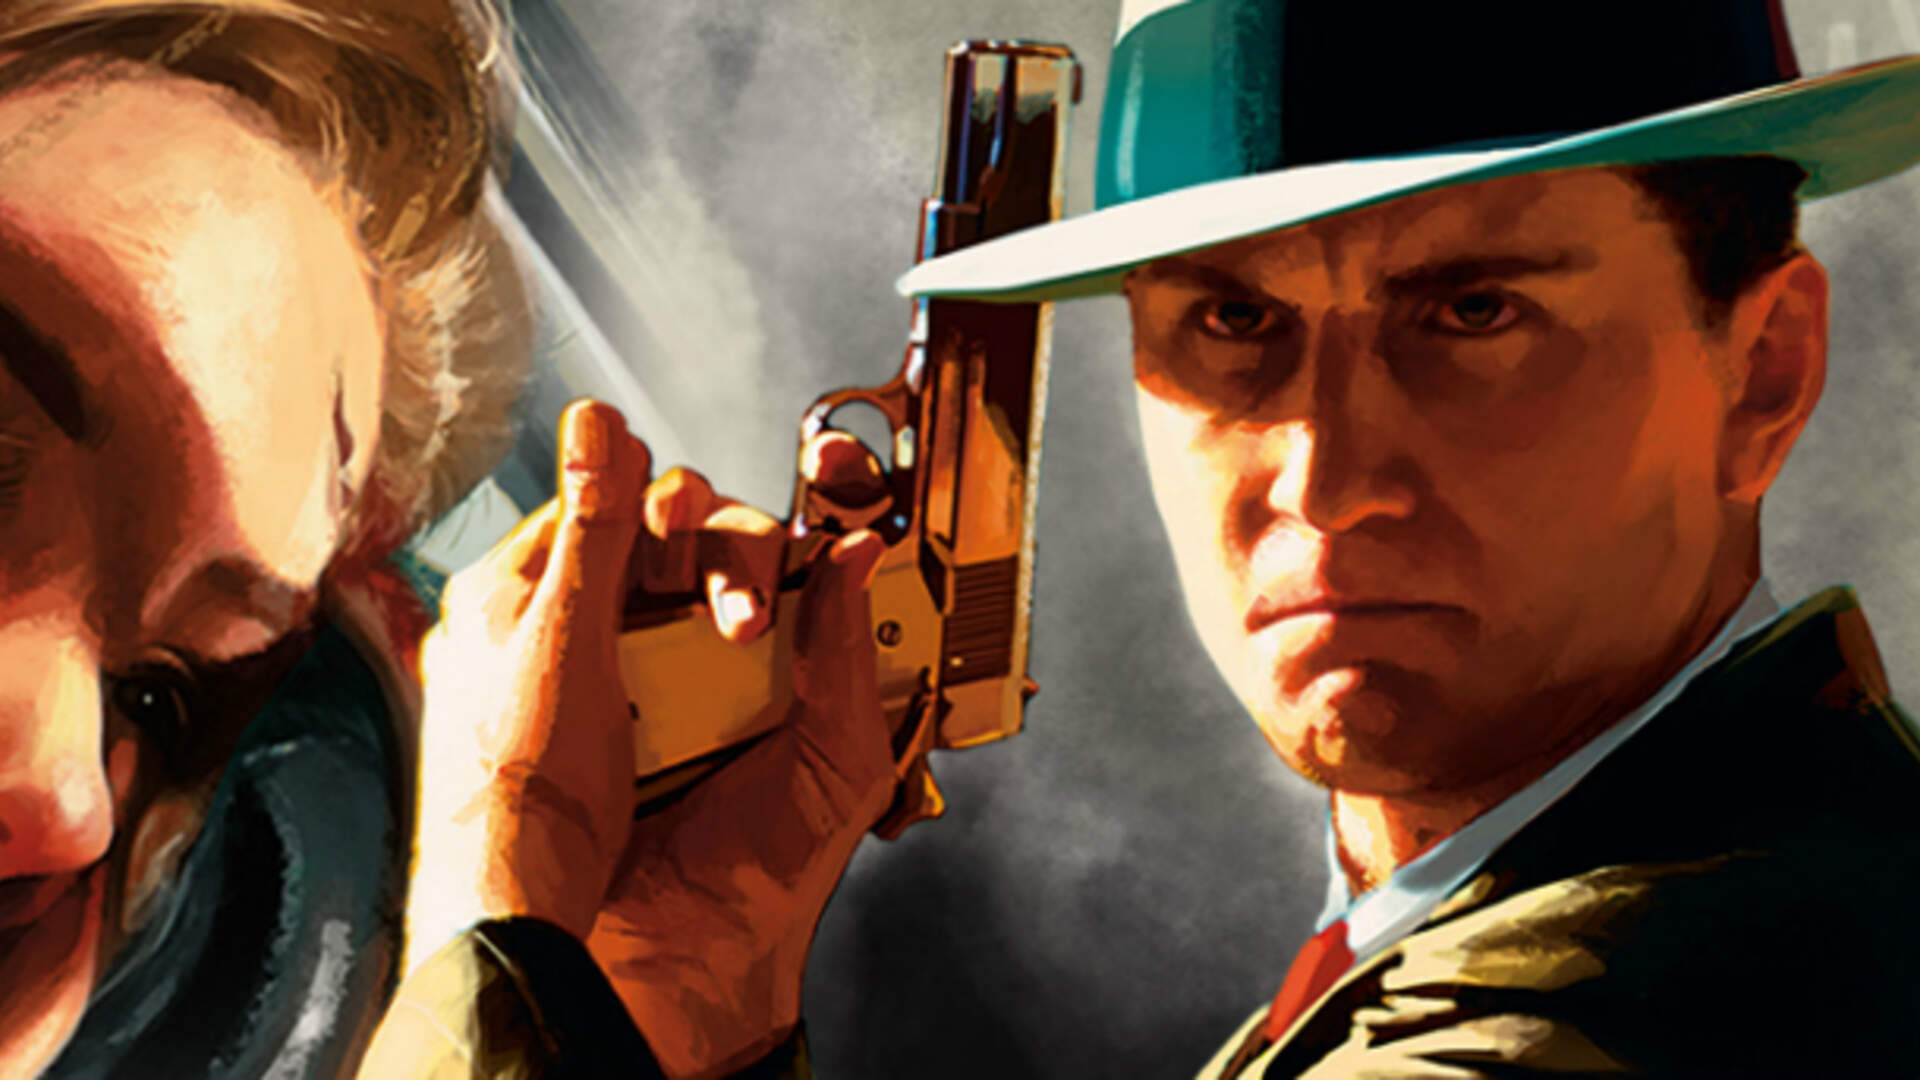 L.A. Noire on Switch Is a Great Port That Doesn't Fix the Flawed Original